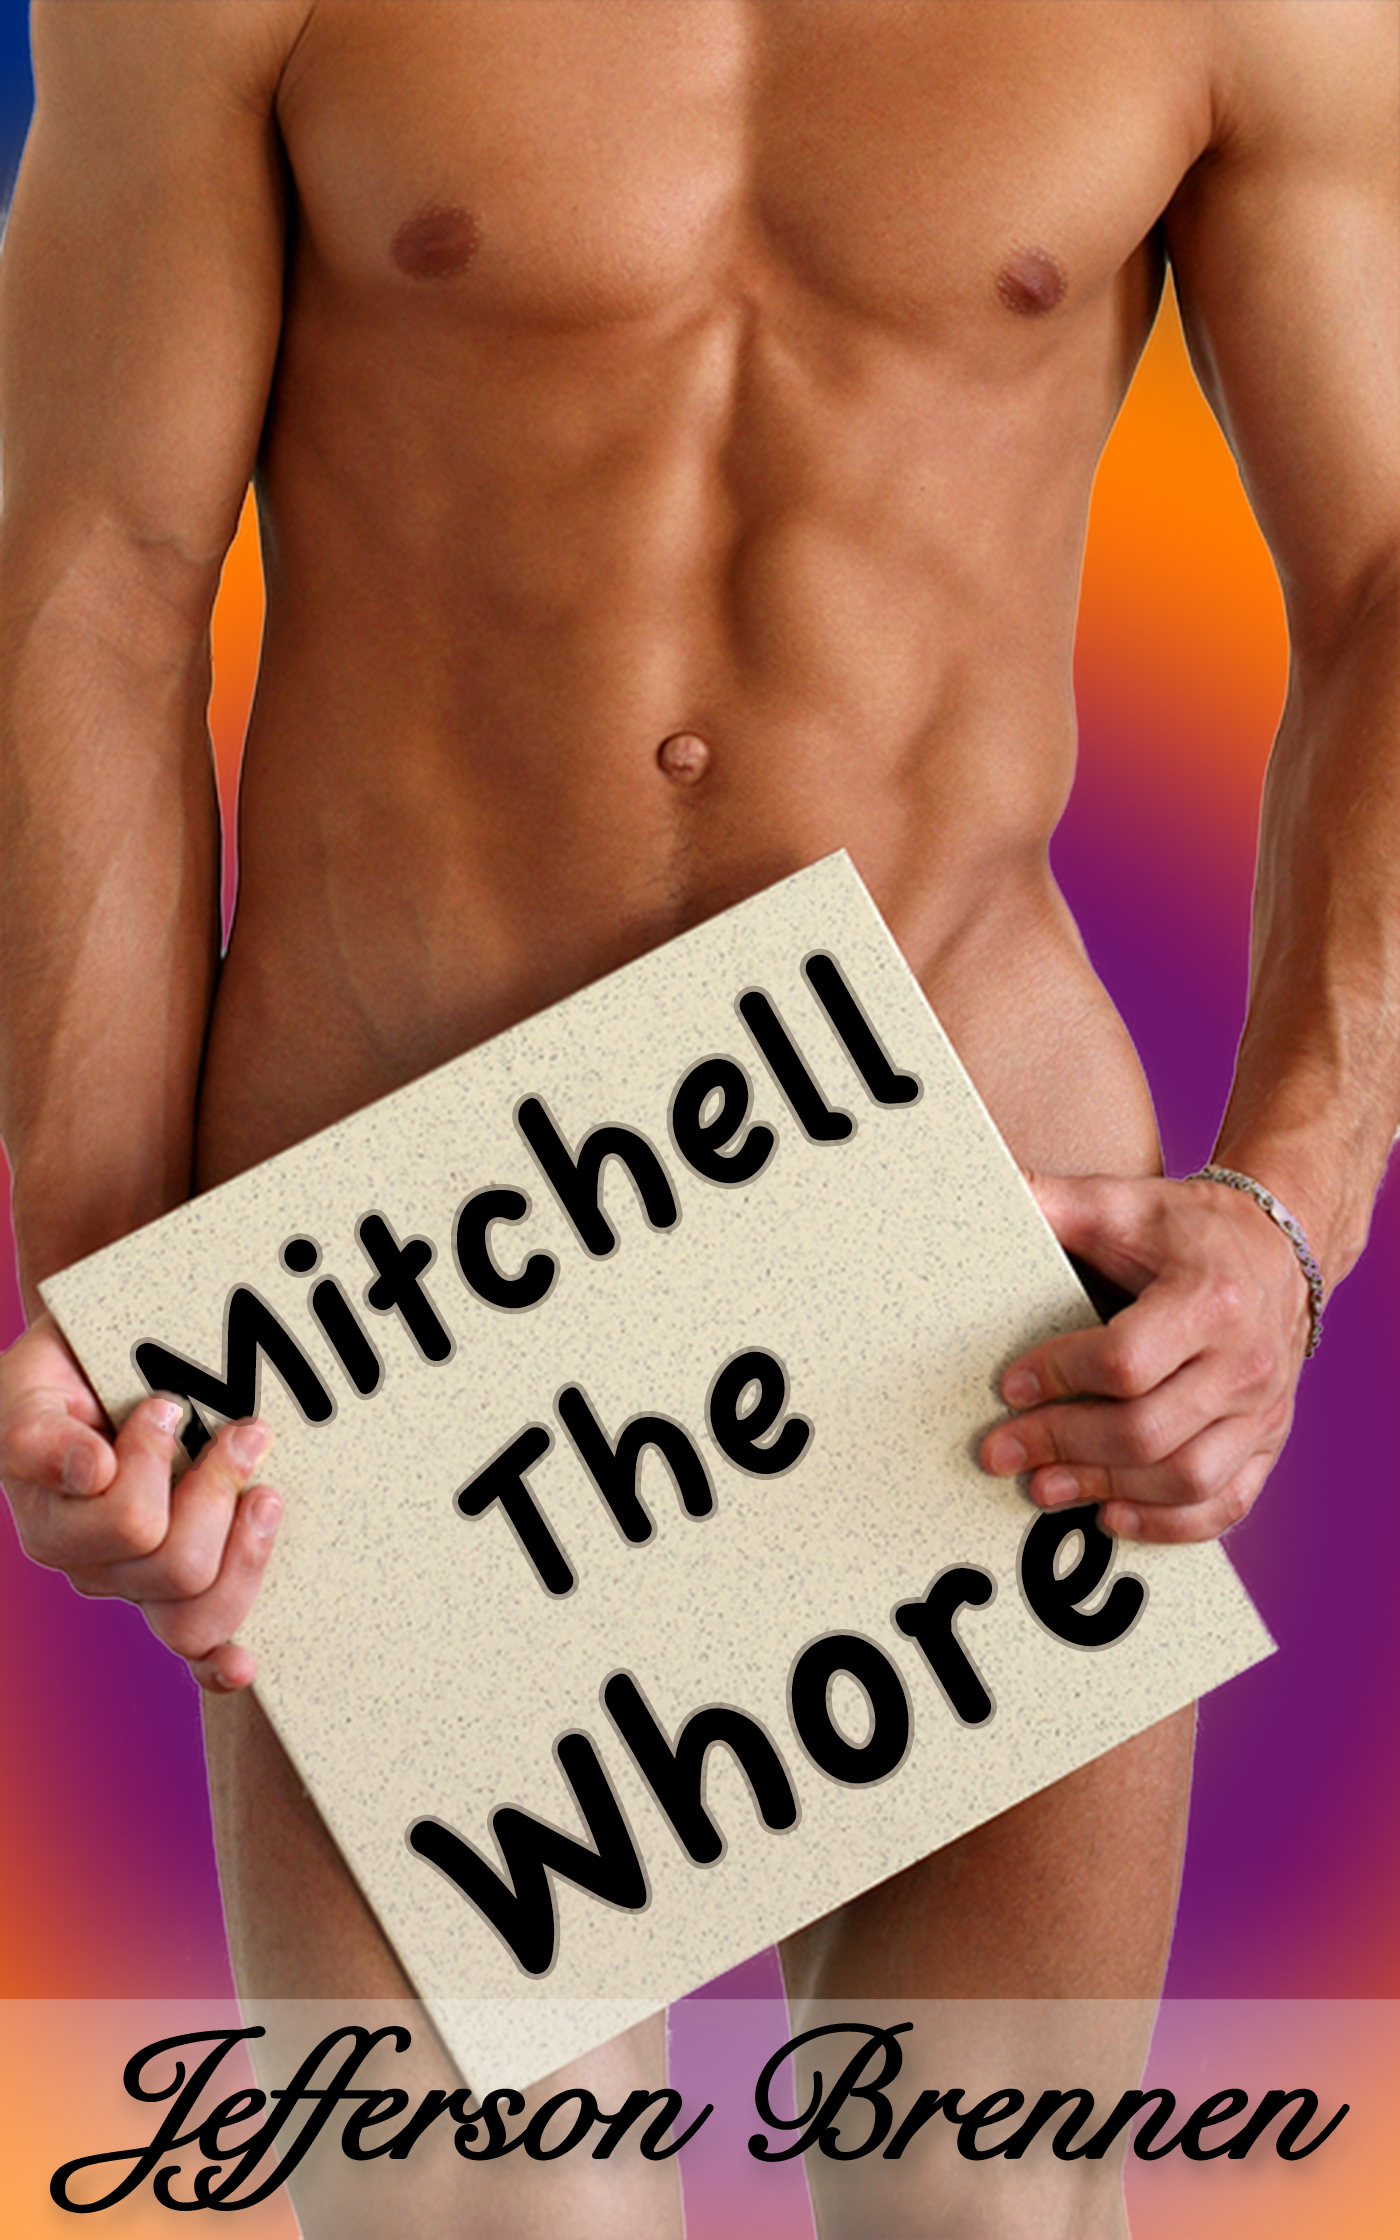 Mitchell the Whore  by  Jefferson Brennen